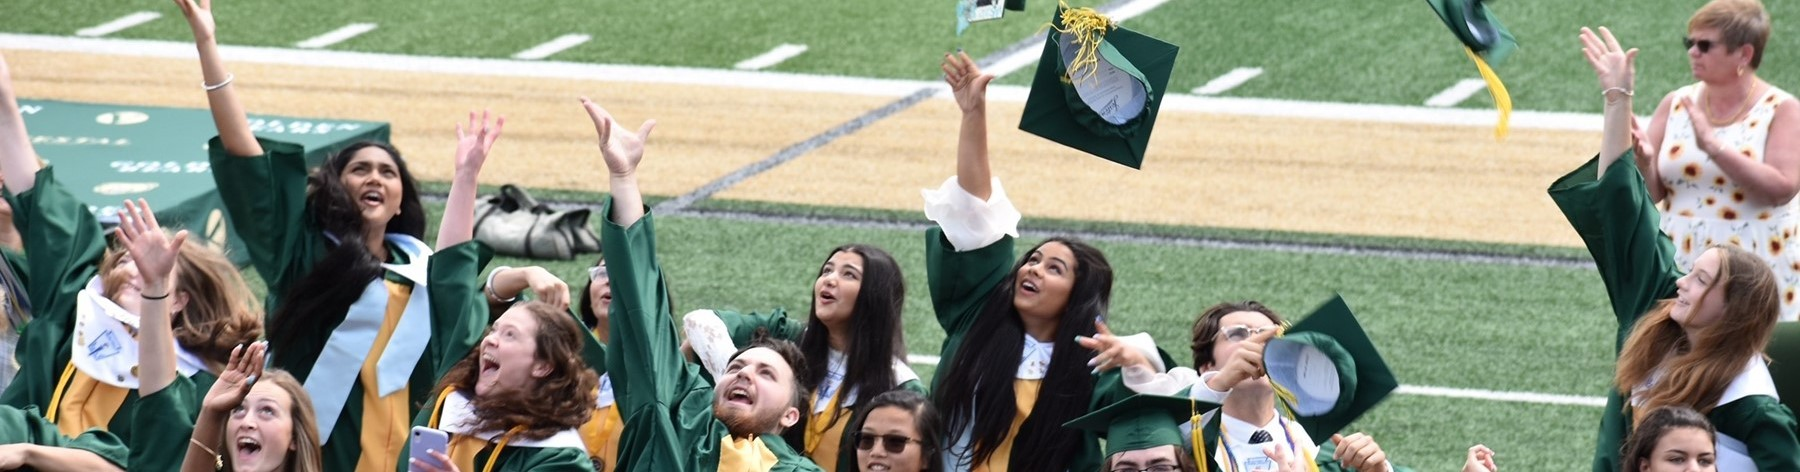 Vestal High School graduates from the Class of 2021 toss their green caps into the air inside Hoover Stadium following their commencement  ceremony on June 26, 2021.